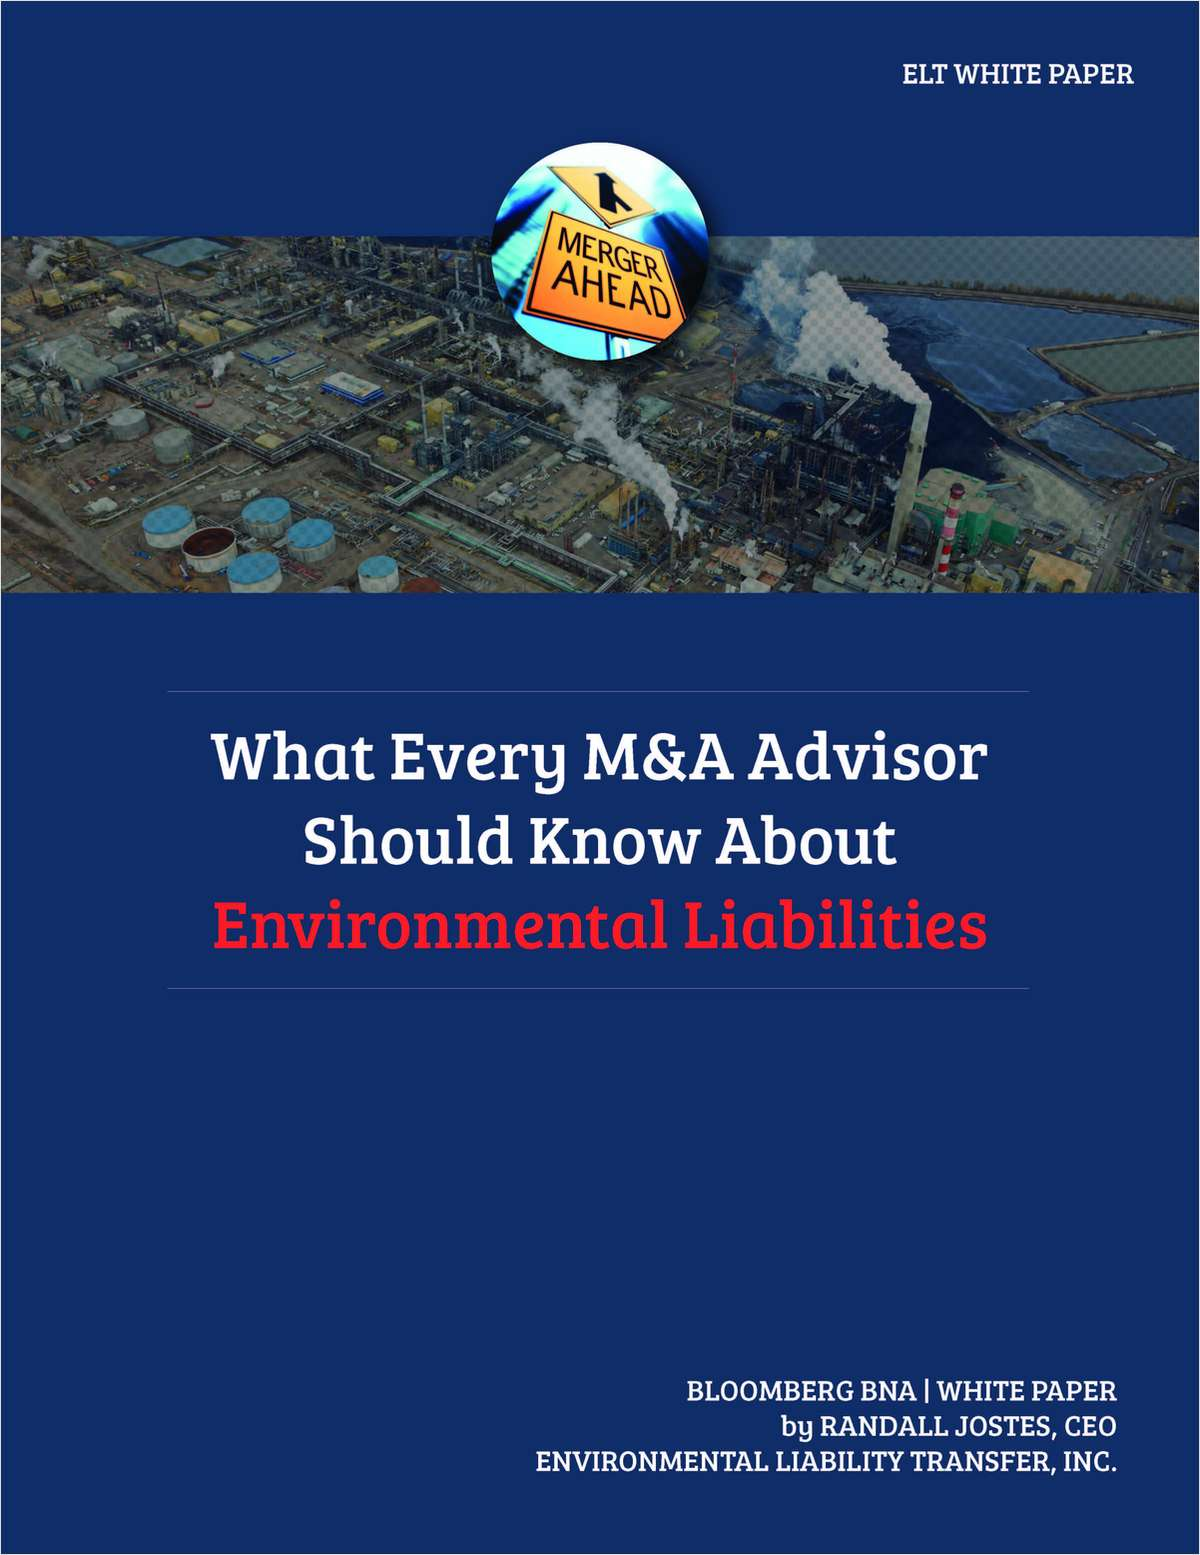 What Every M&A Advisor Should Know About Environmental Liabilities